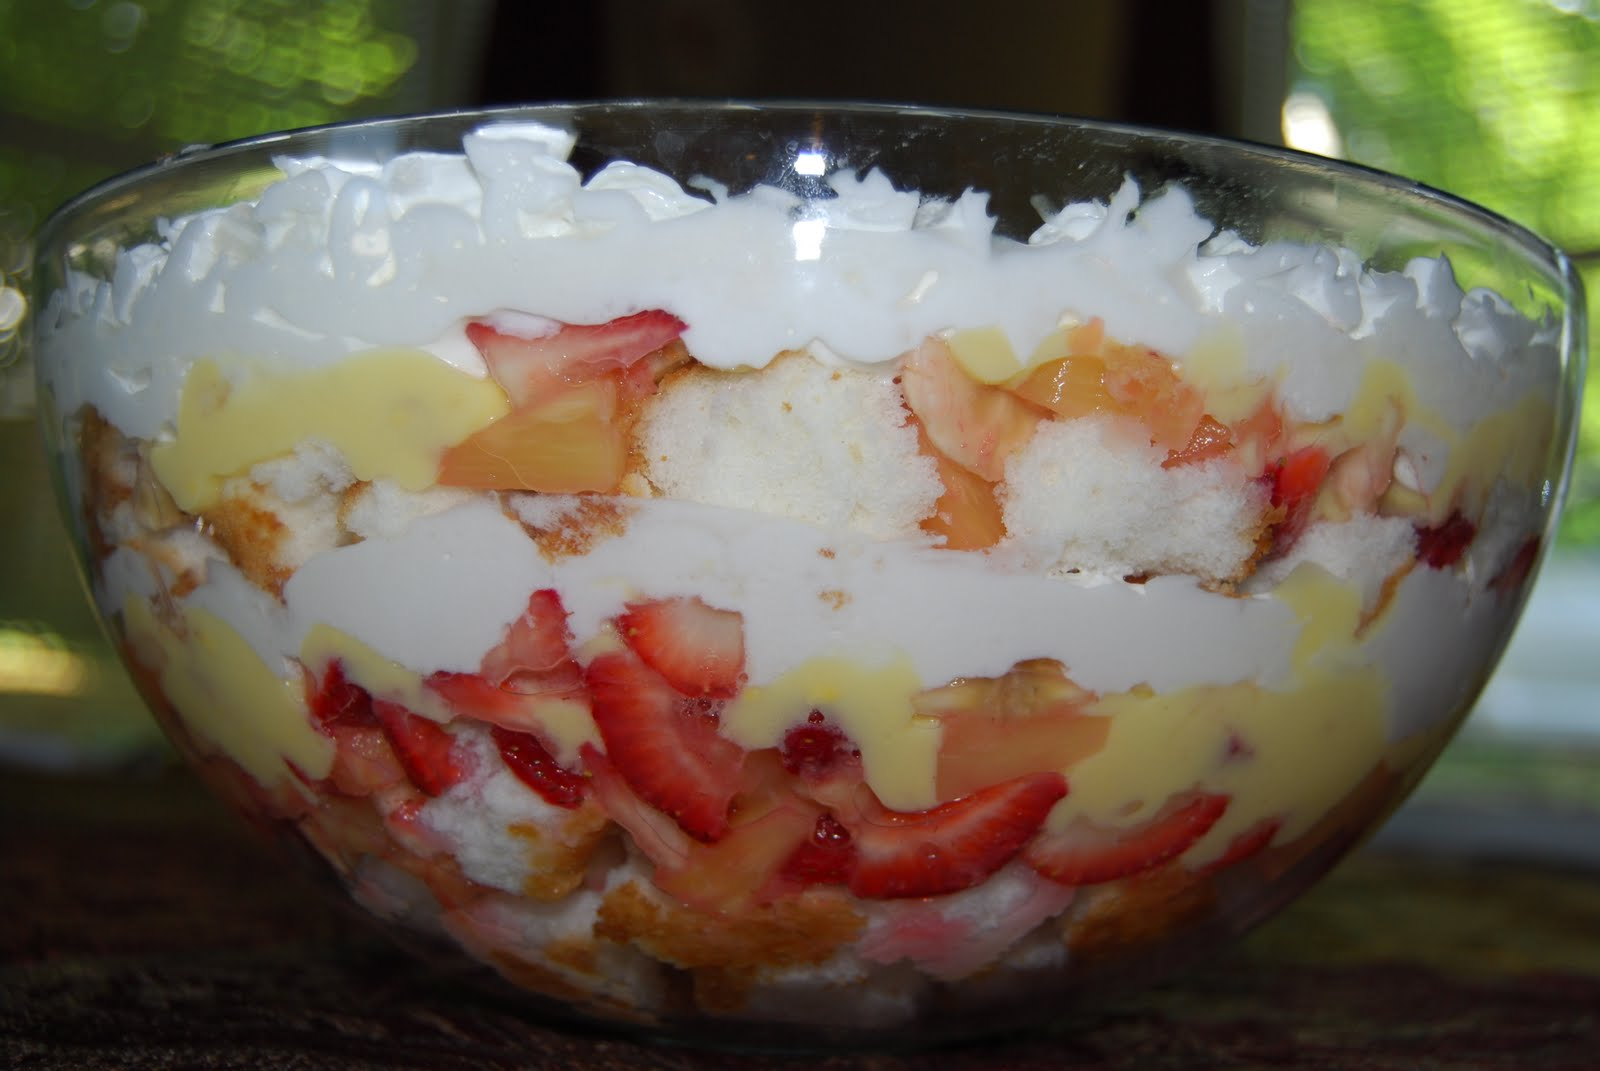 ... Cake or Strawberry and Pineapple Trifle. I always bring the bowl home